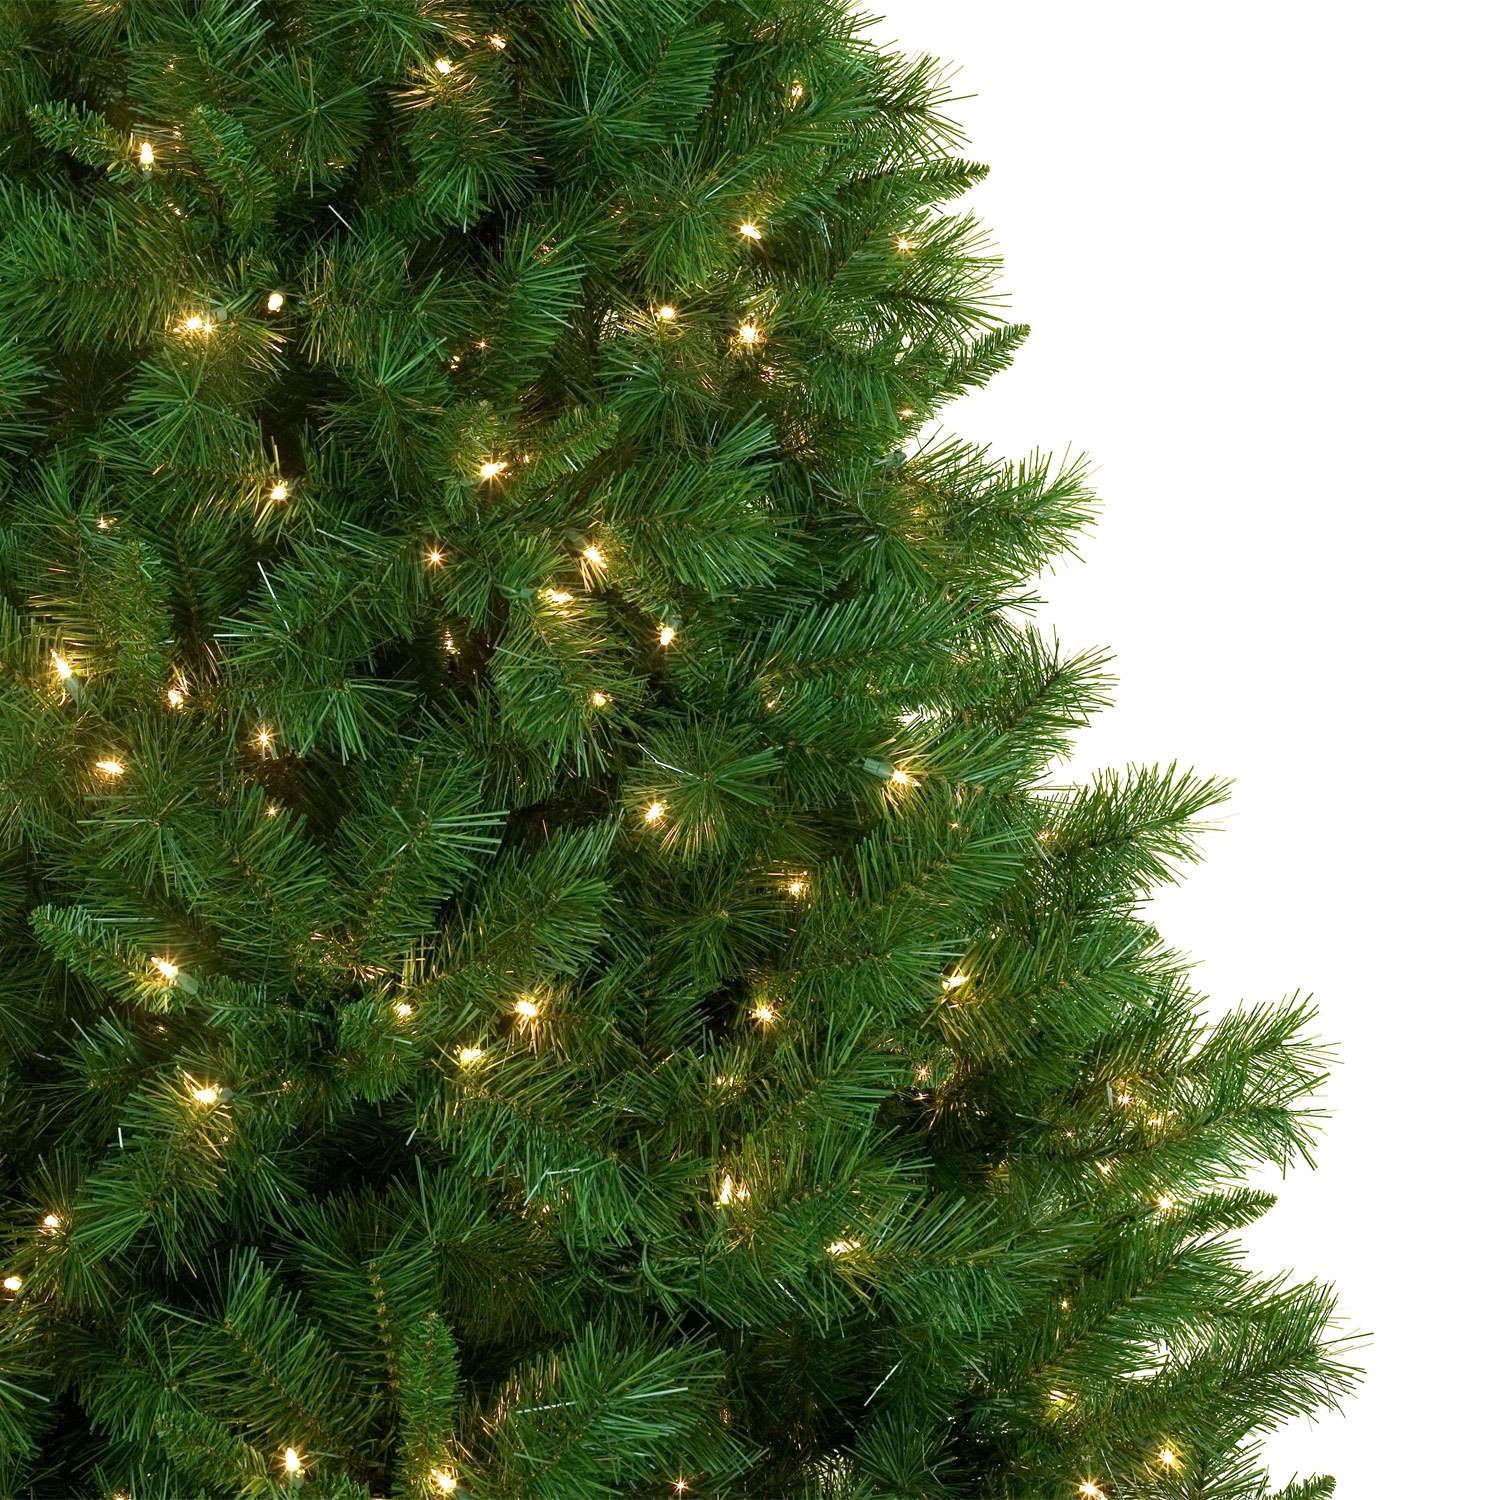 Dunhill Fir Tree Profile